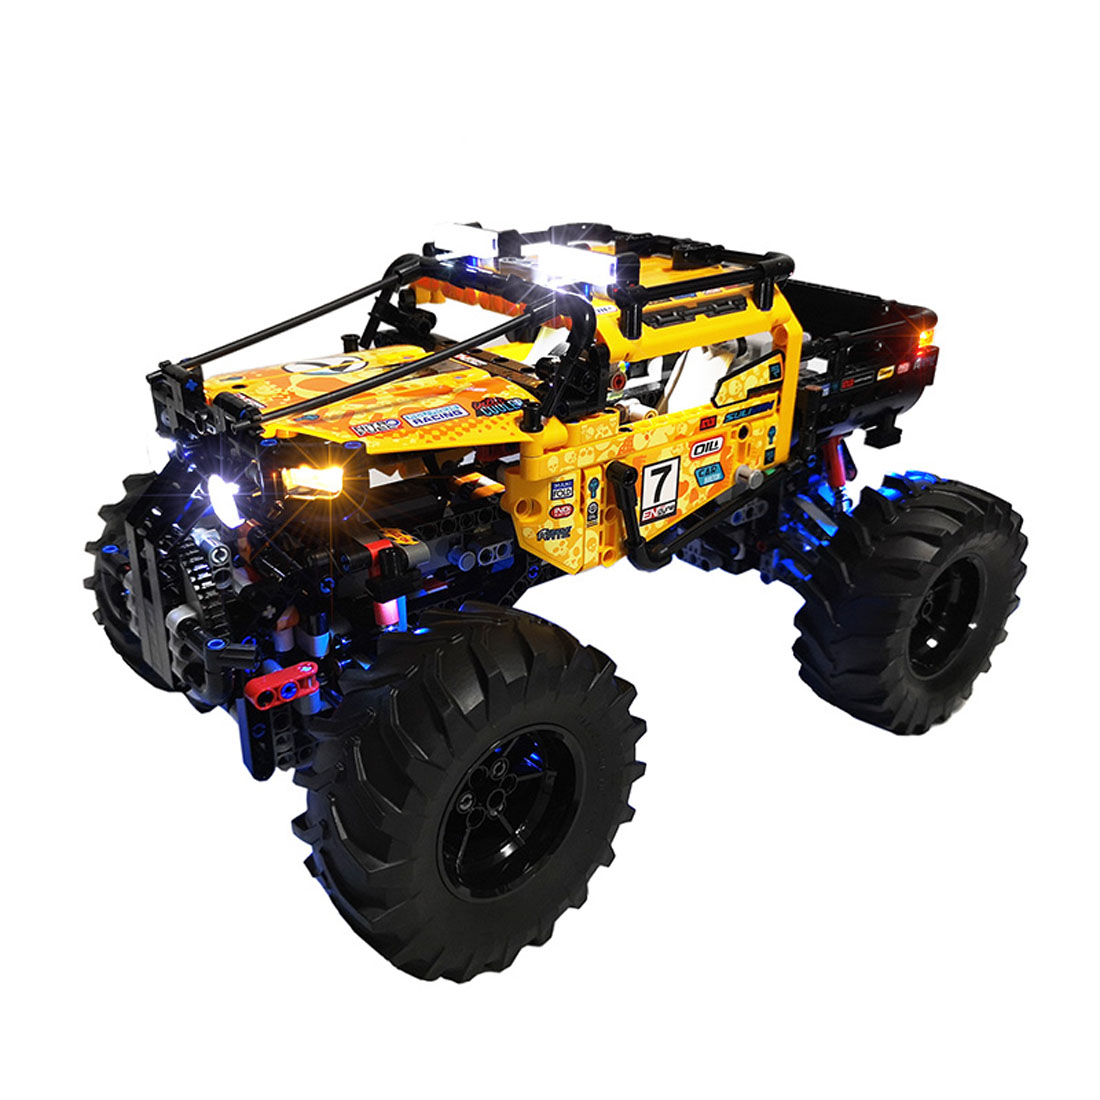 Lithium Battery Powered LED Lighting Kit For 4x4 X-treme Off-Roader 42099 (LED Included Only, No Kit)- RC Version